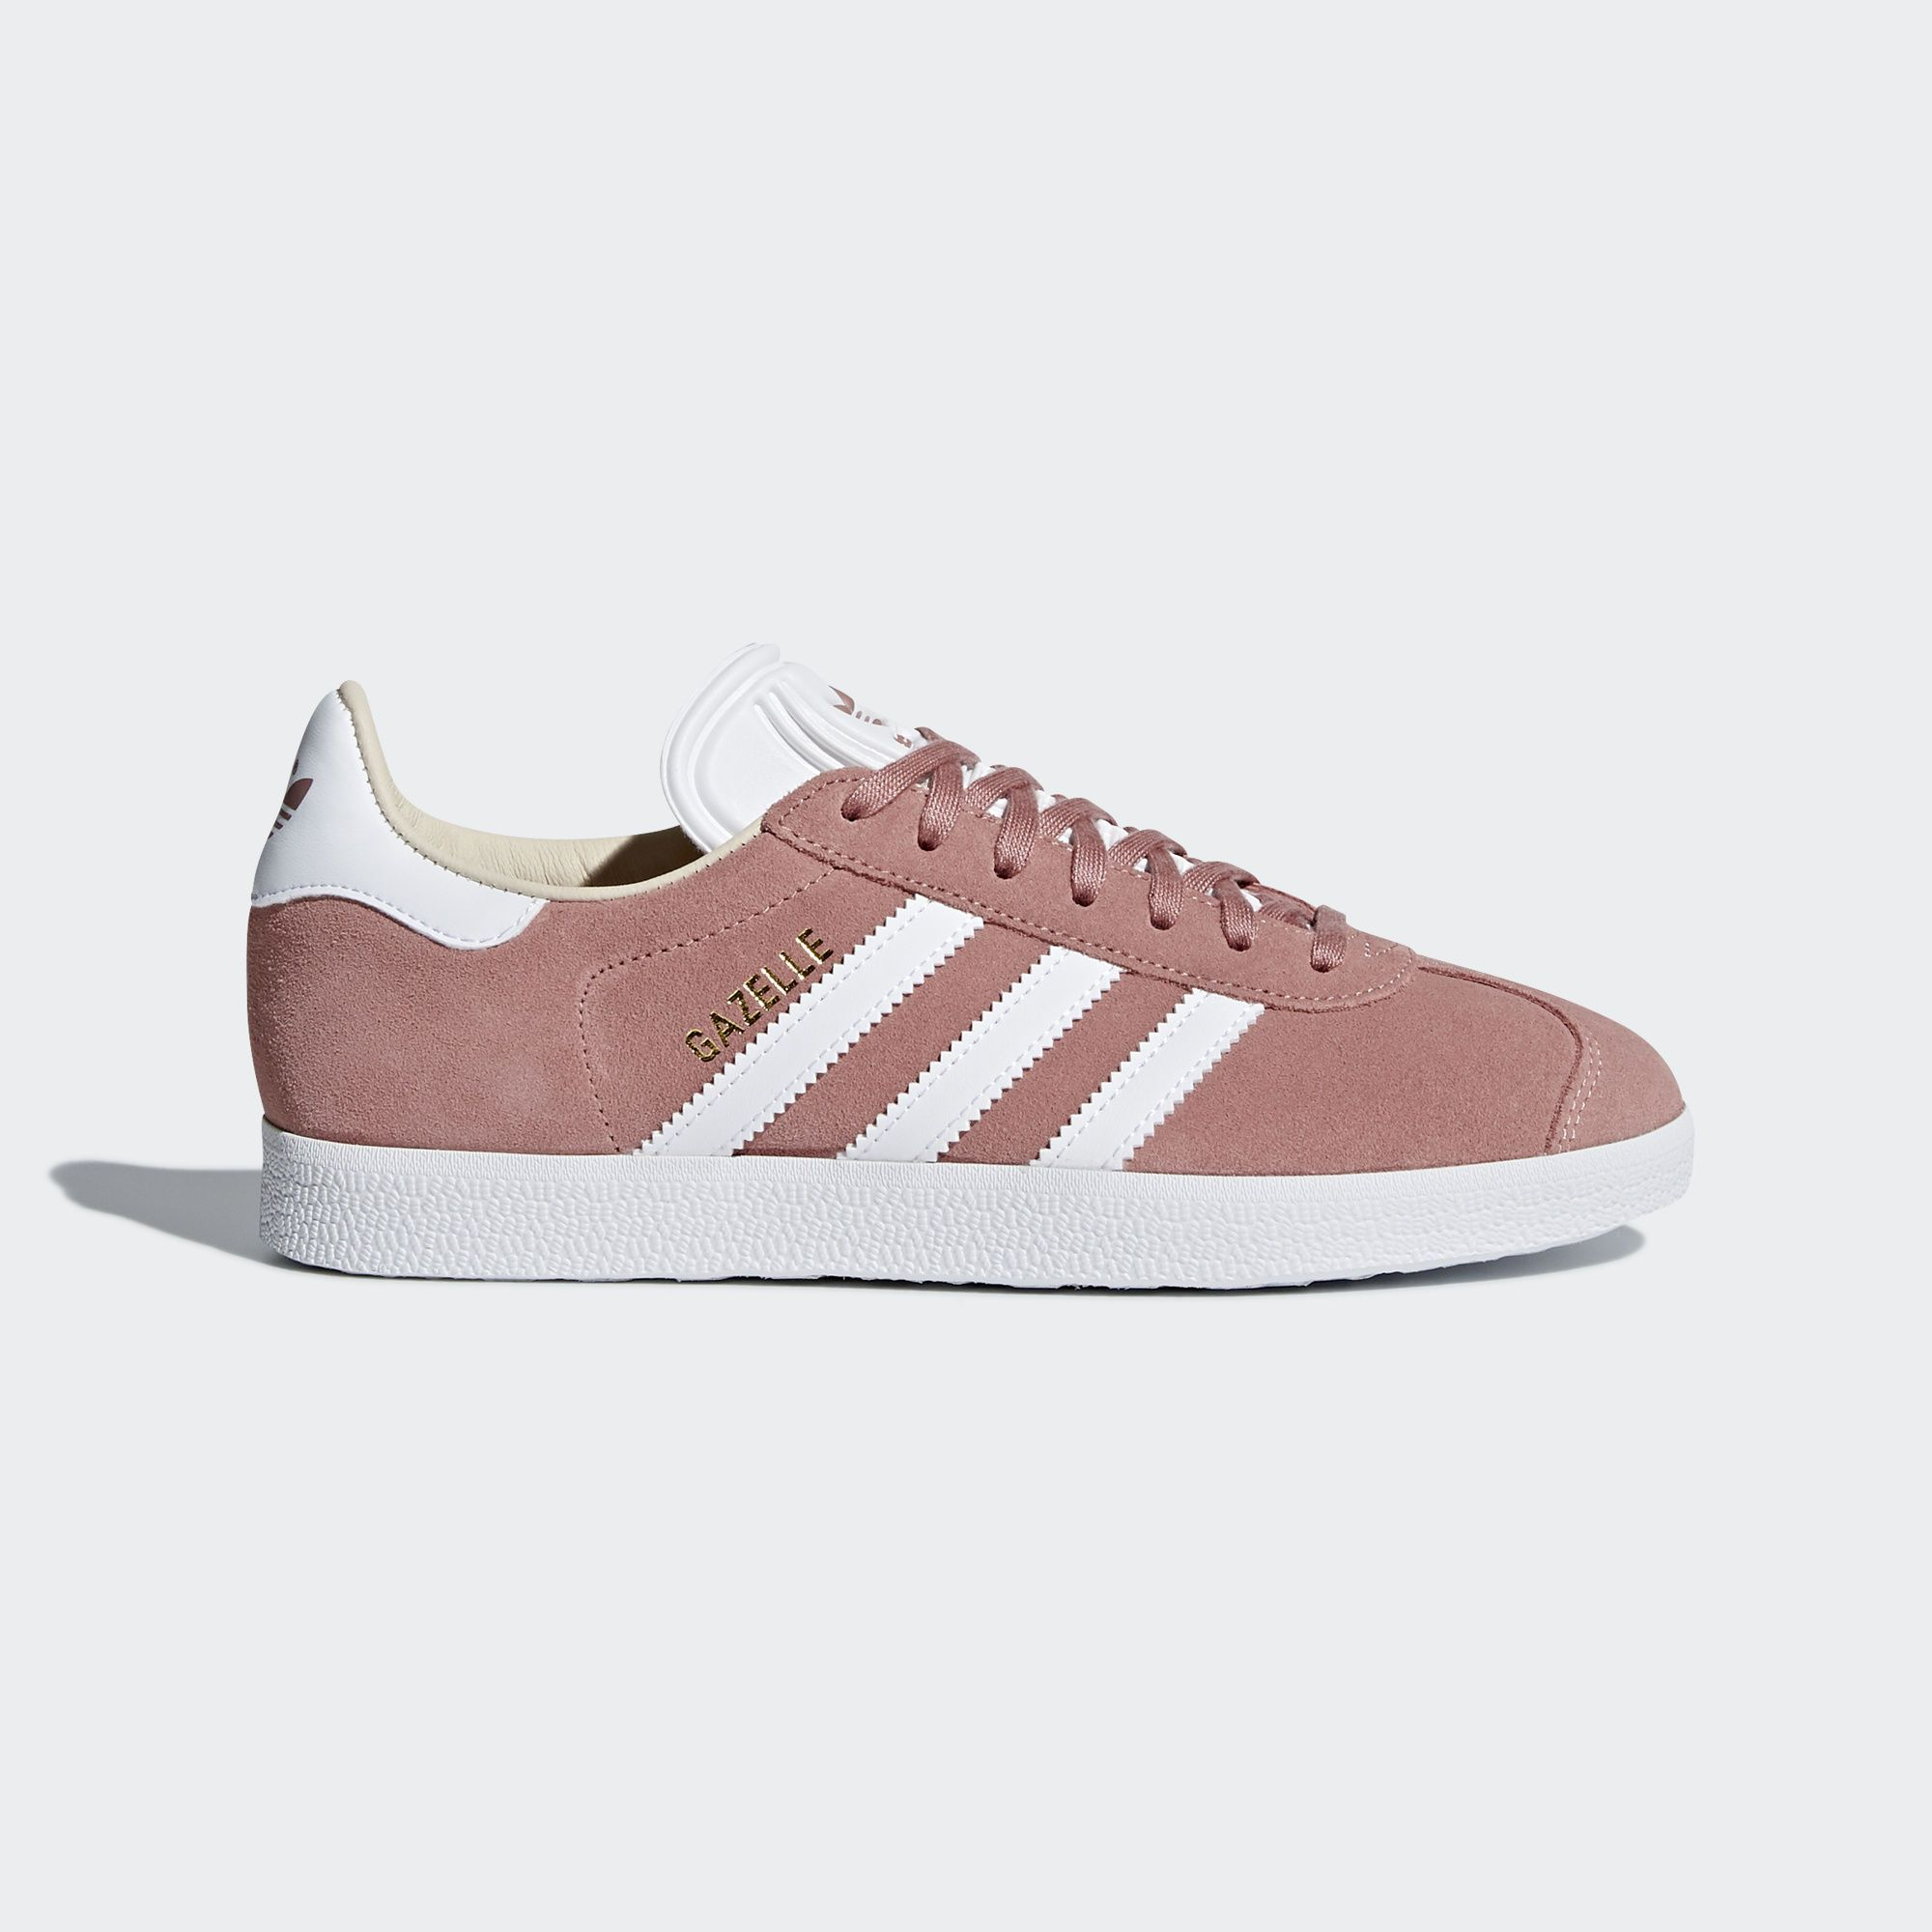 adidas Gazelle Suede Trainers in Grey   Things to Wear   Adidas, Sneakers,  Shoes b4e987c2458